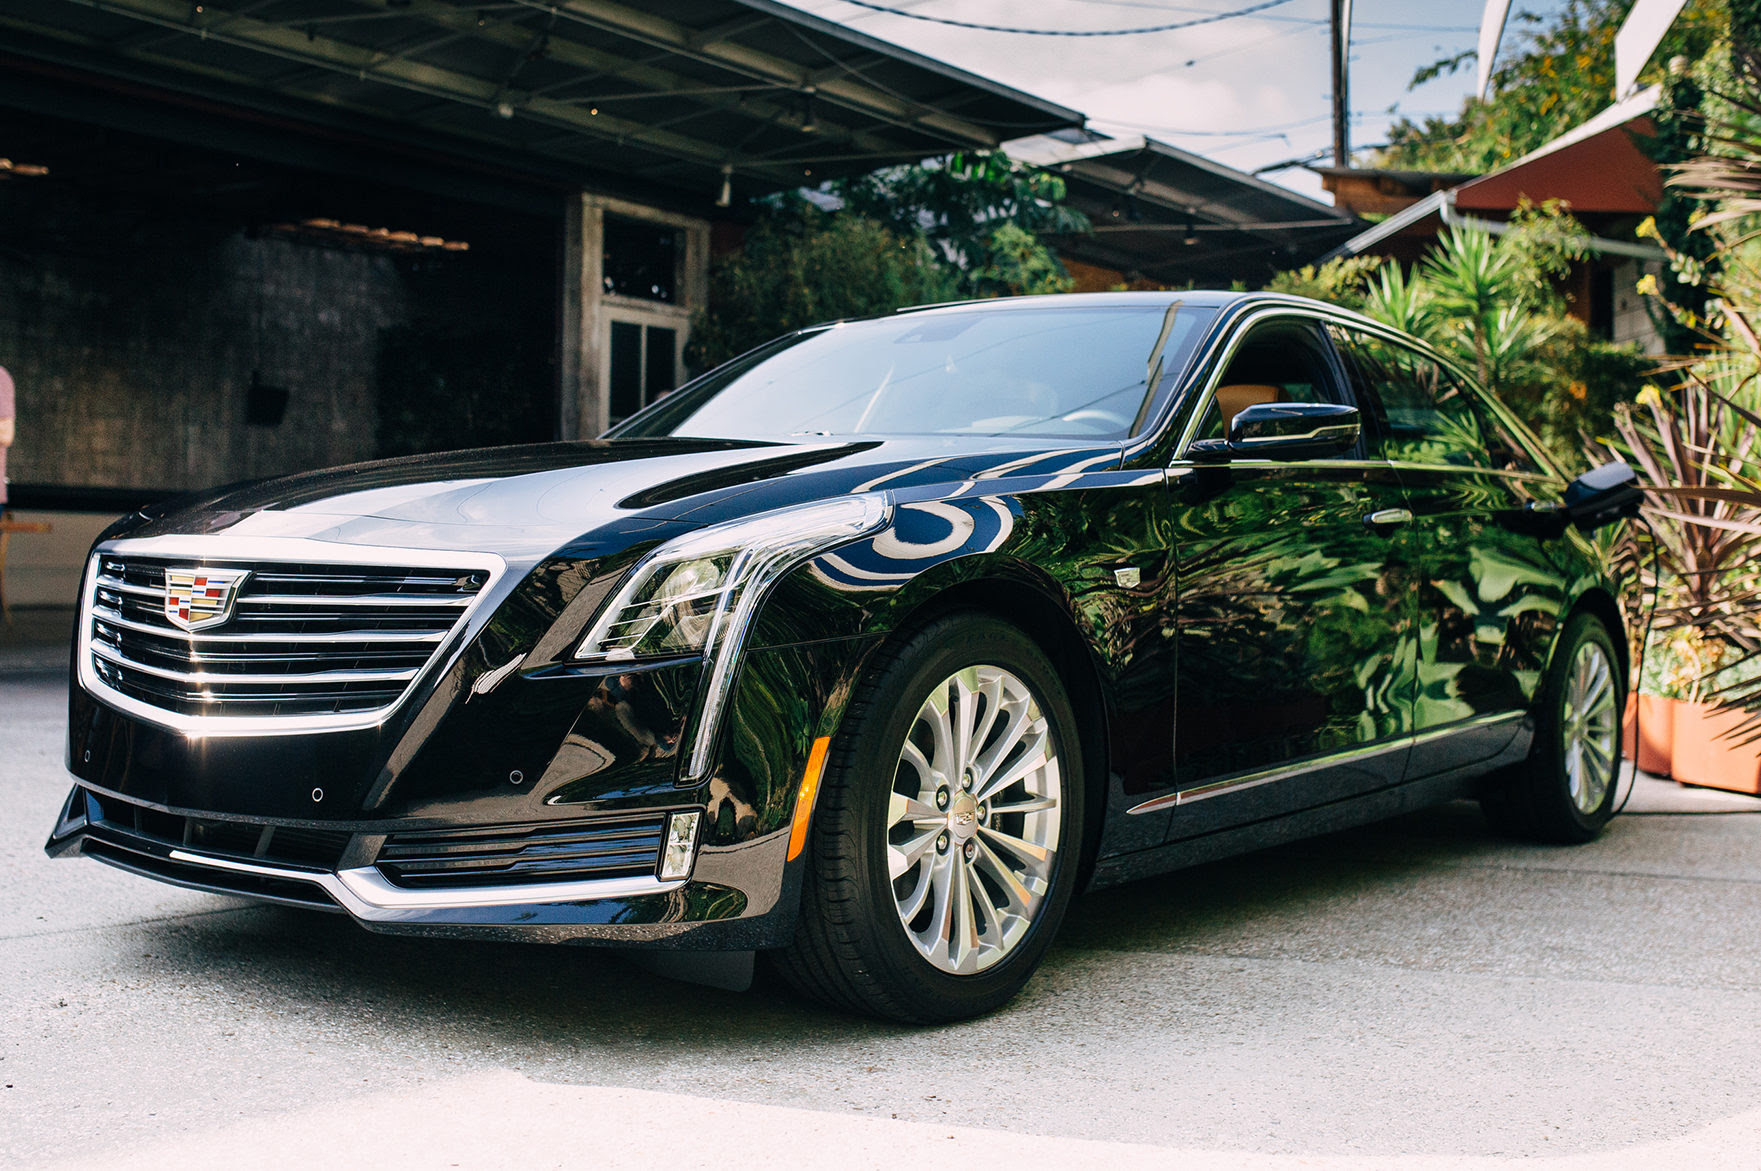 2017 Cadillac CT6 Reviews and Rating | Motor Trend